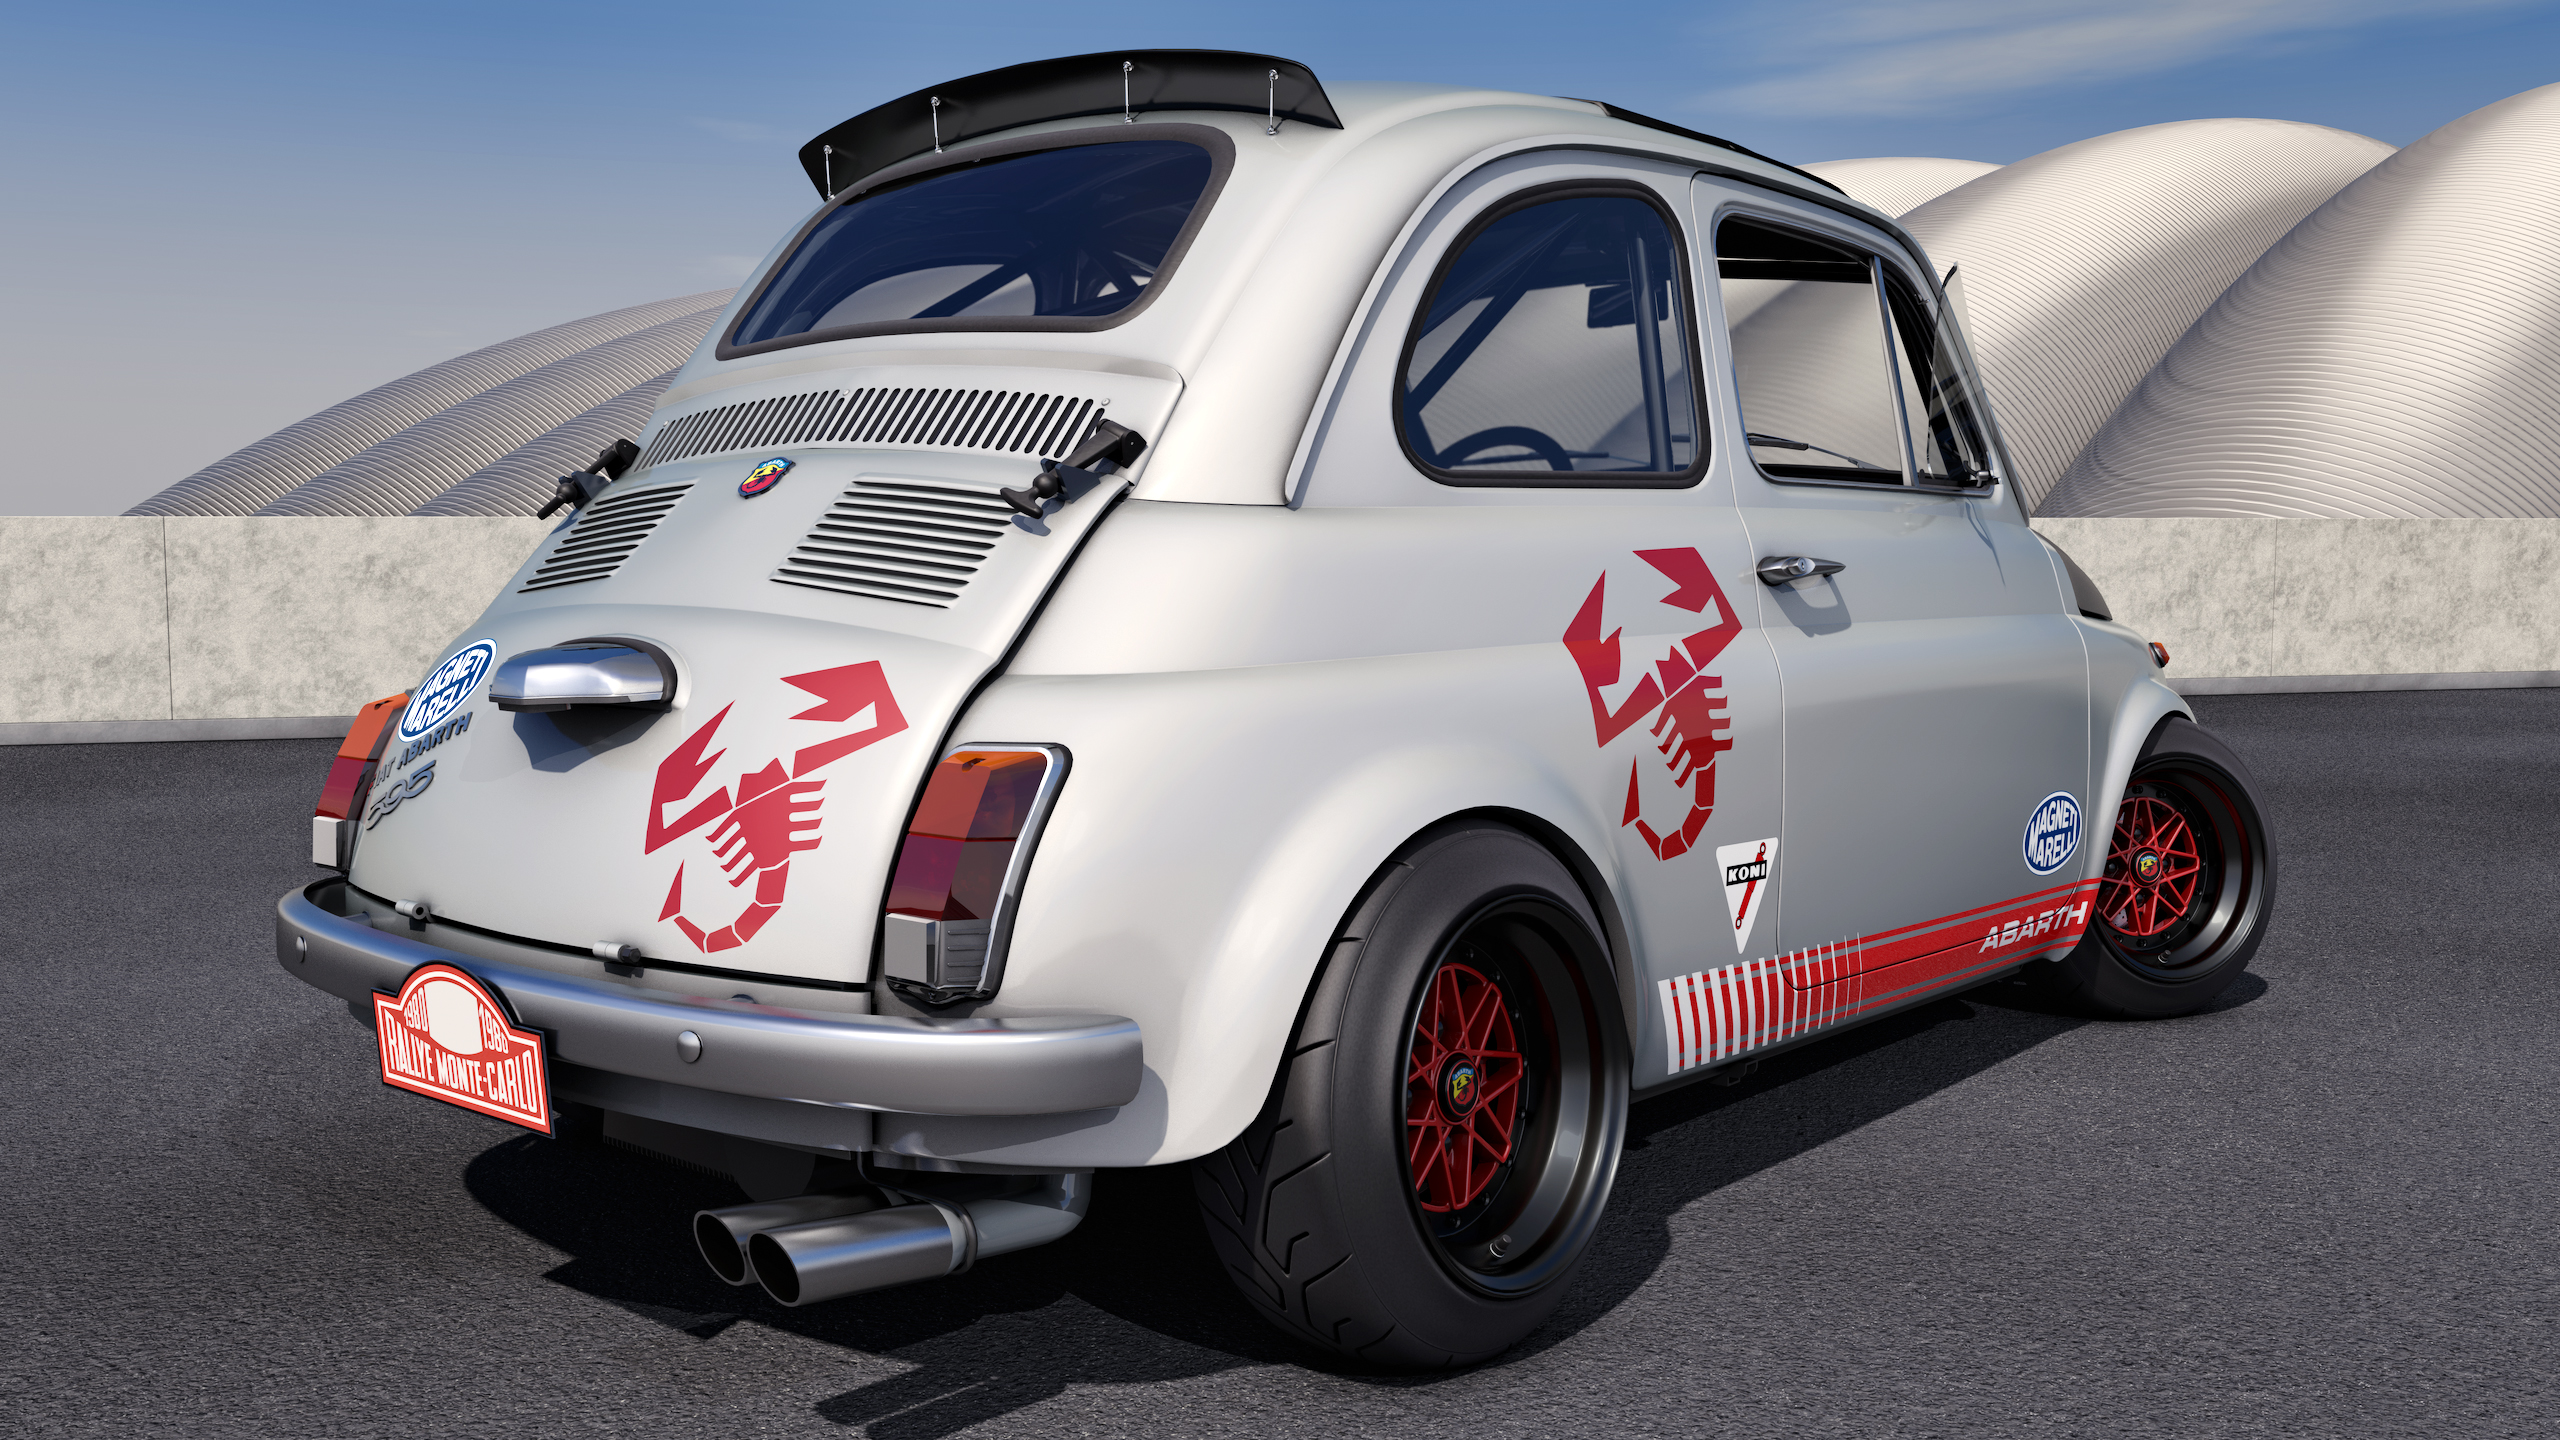 1968 Fiat Abarth 595 By Samcurry On Deviantart